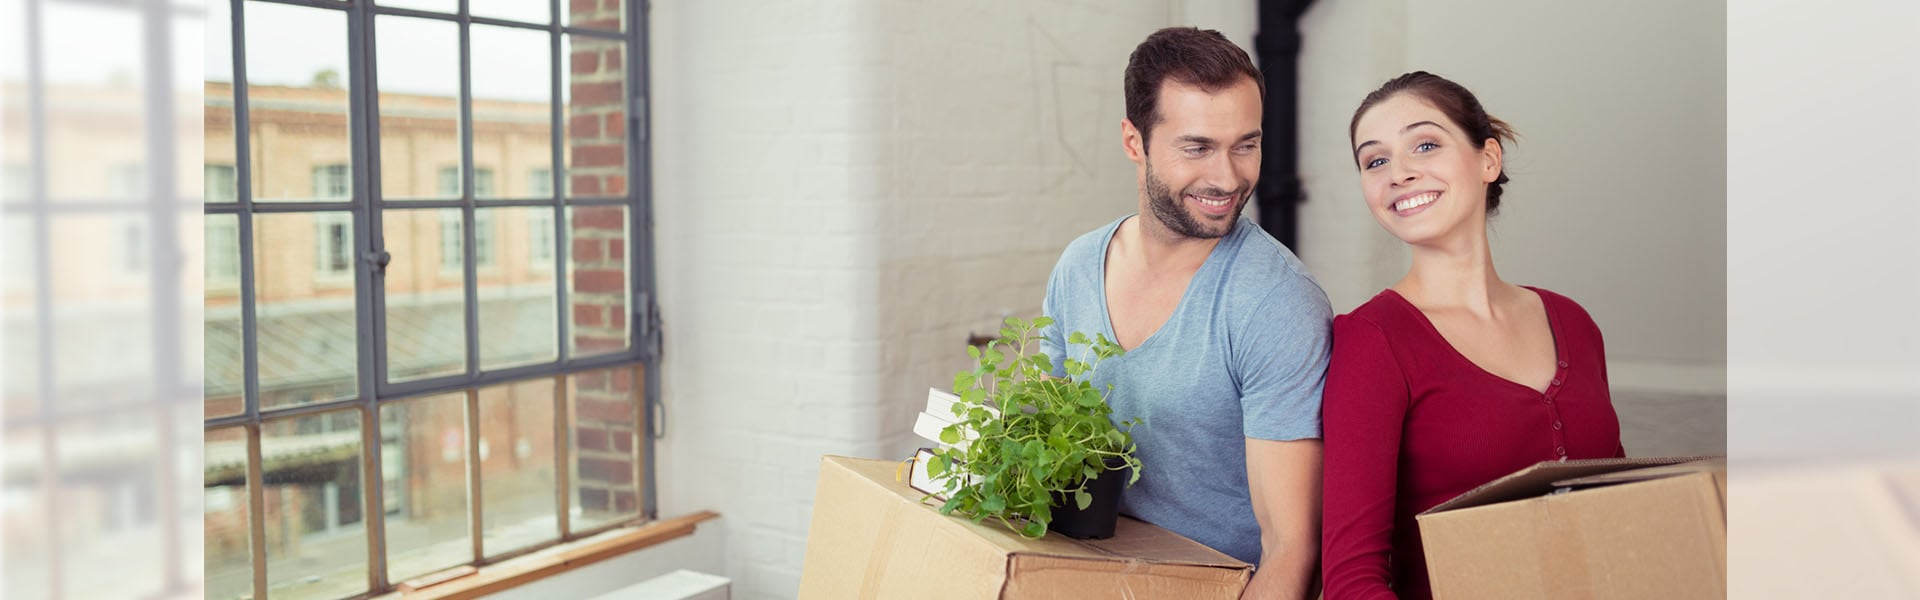 Your relocation company in Zurich for relocation, cleaning, waste disposal and storage.